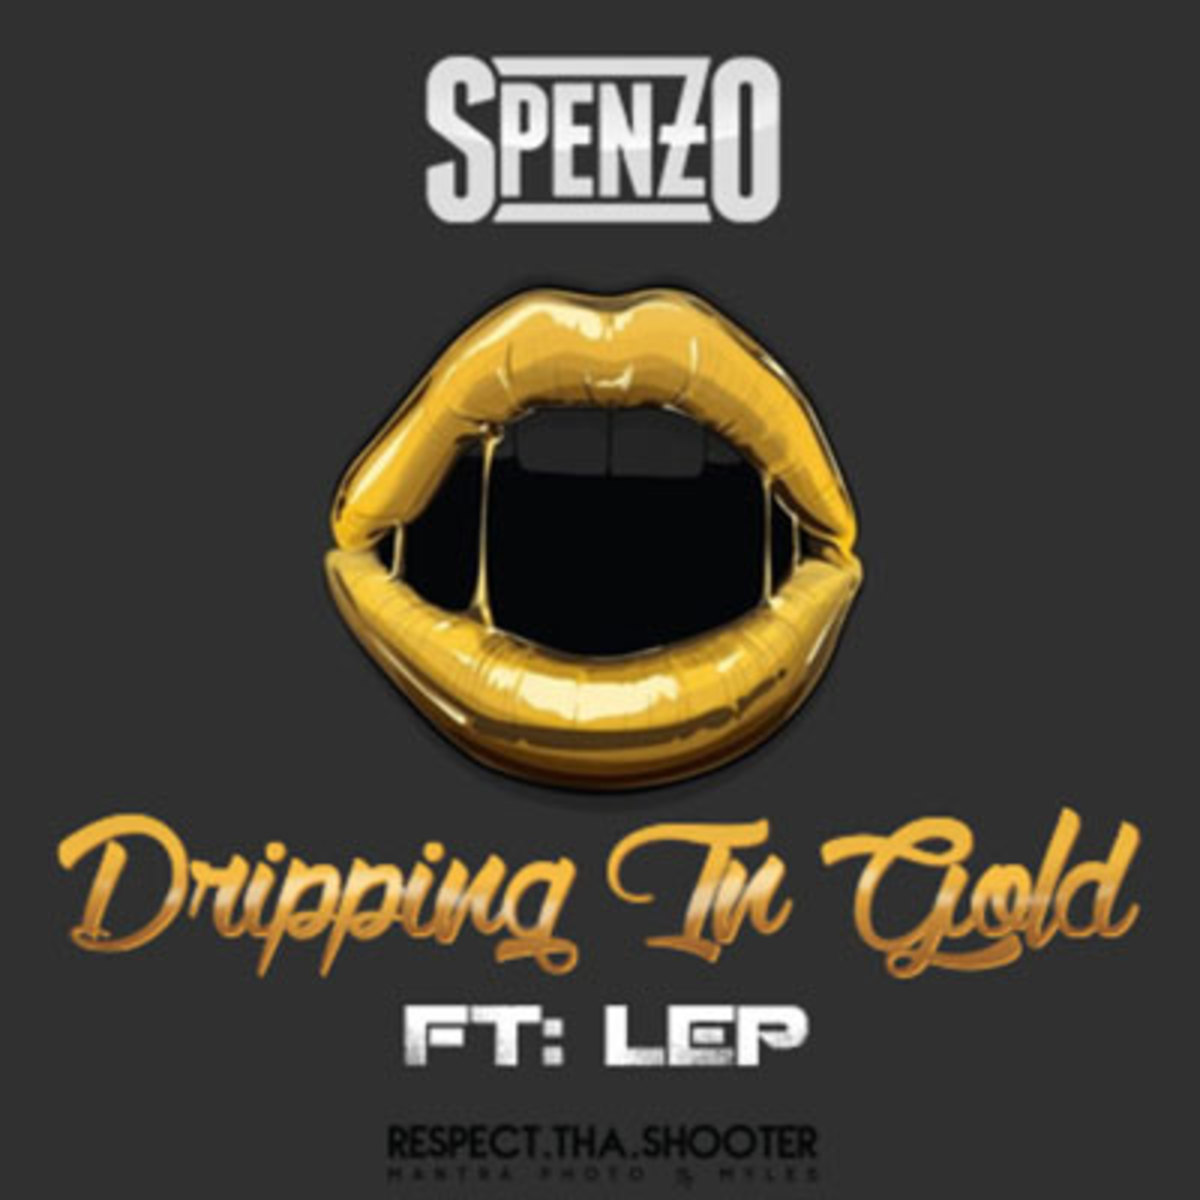 spenzo-drippingold.jpg